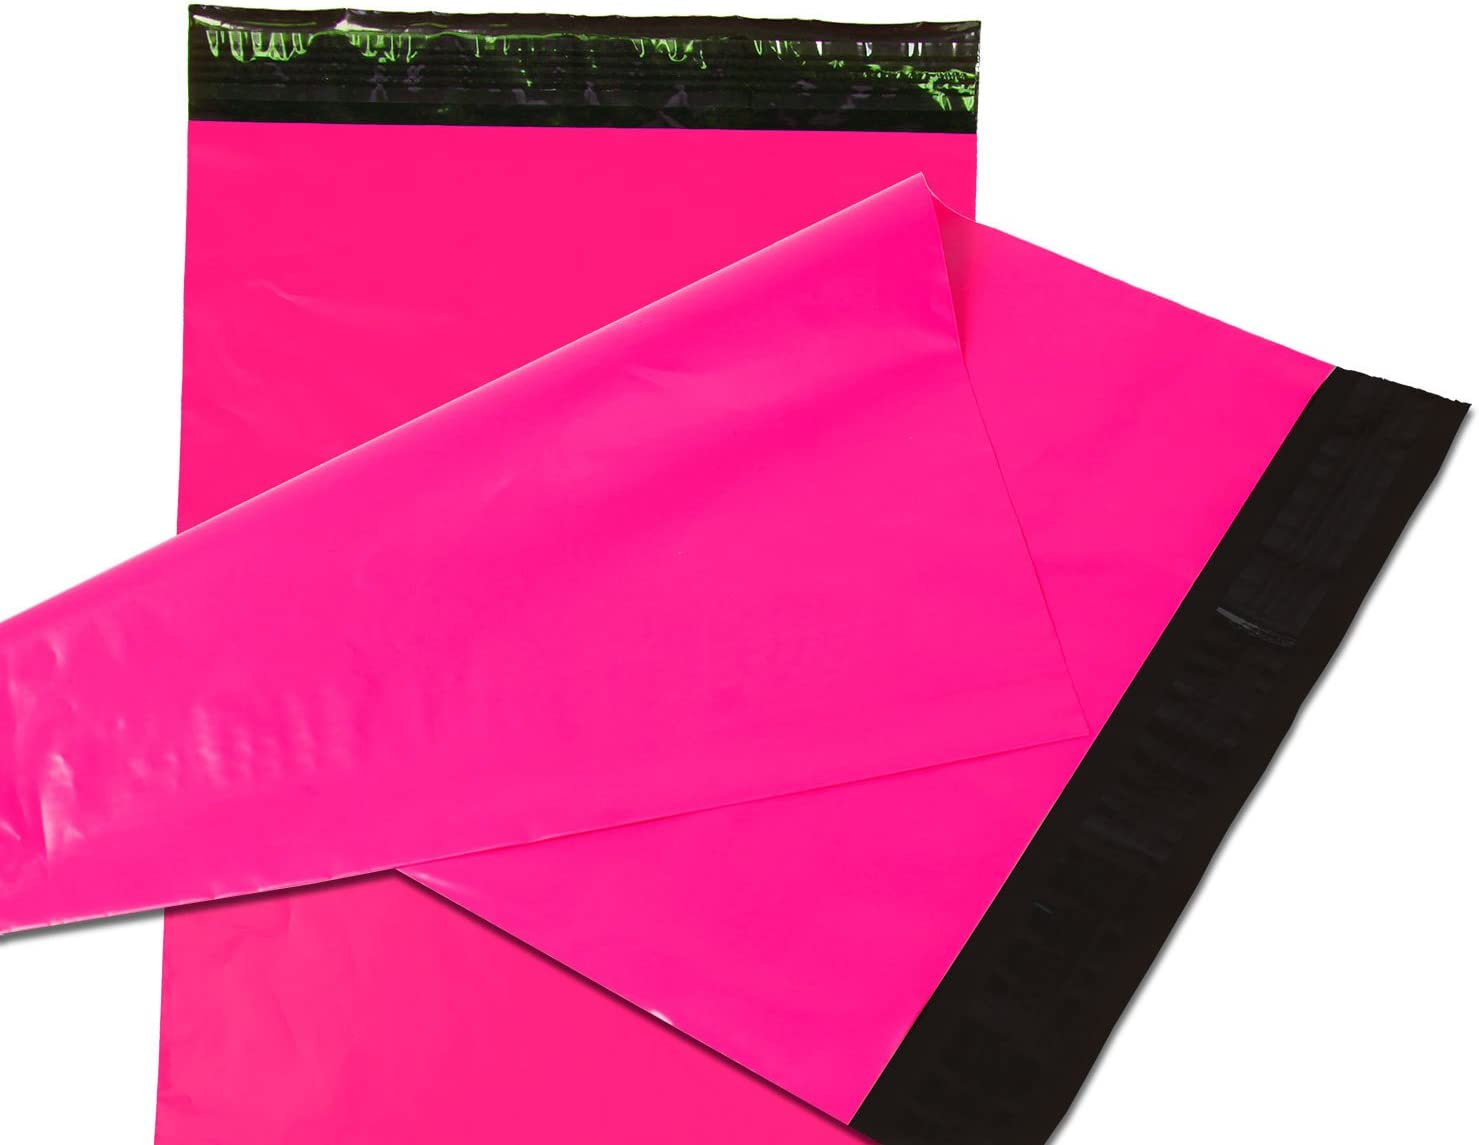 ProLine 7.5x10.5 Purple Poly Mailer Envelopes Shipping Bags with Self Adhesive Waterproof and Tear-Proof Postal Bags 500